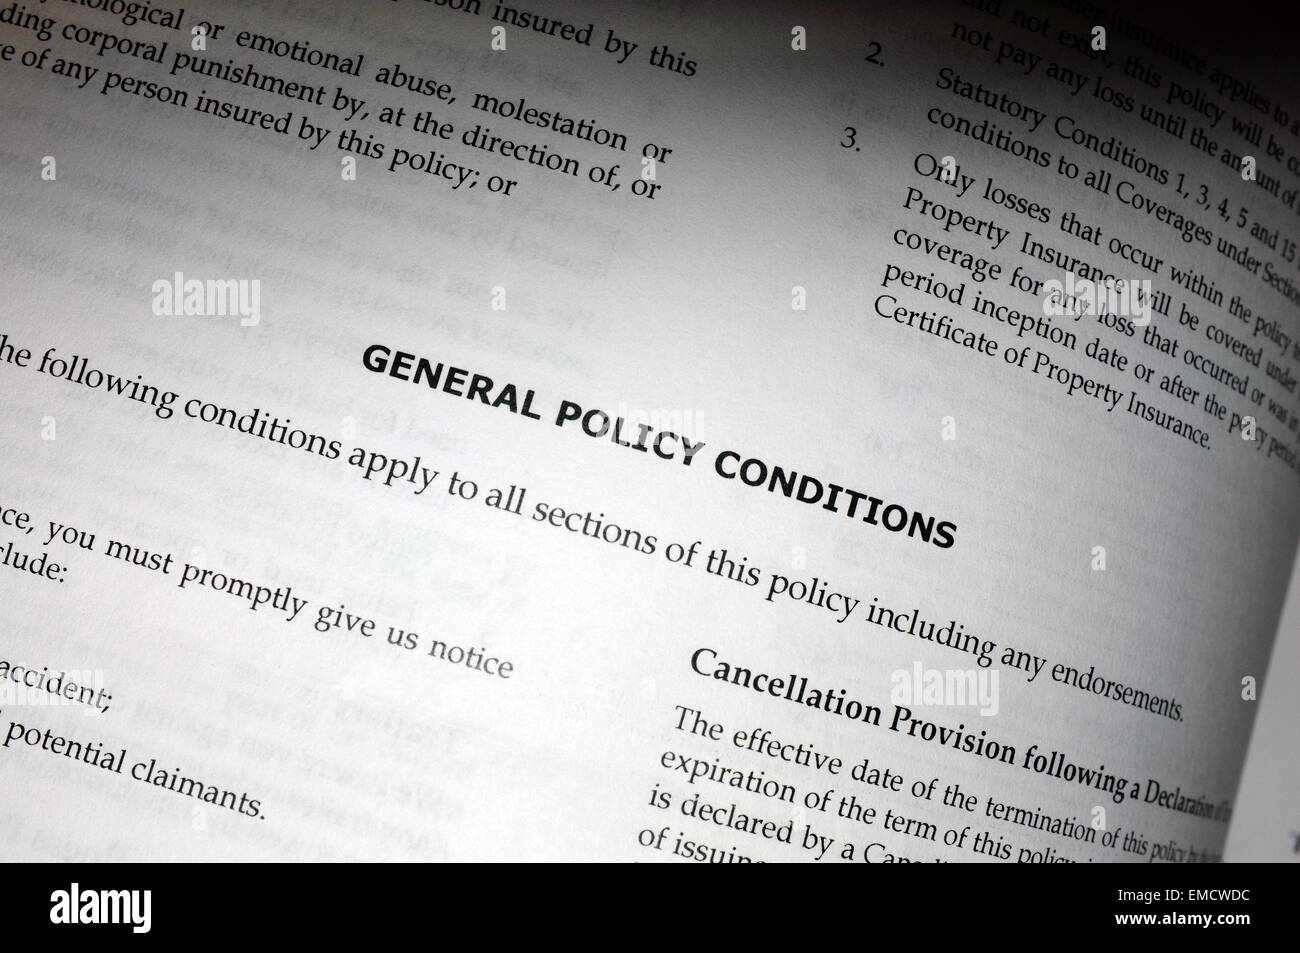 General policy conditions paperwork from an insurance company. - Stock Image